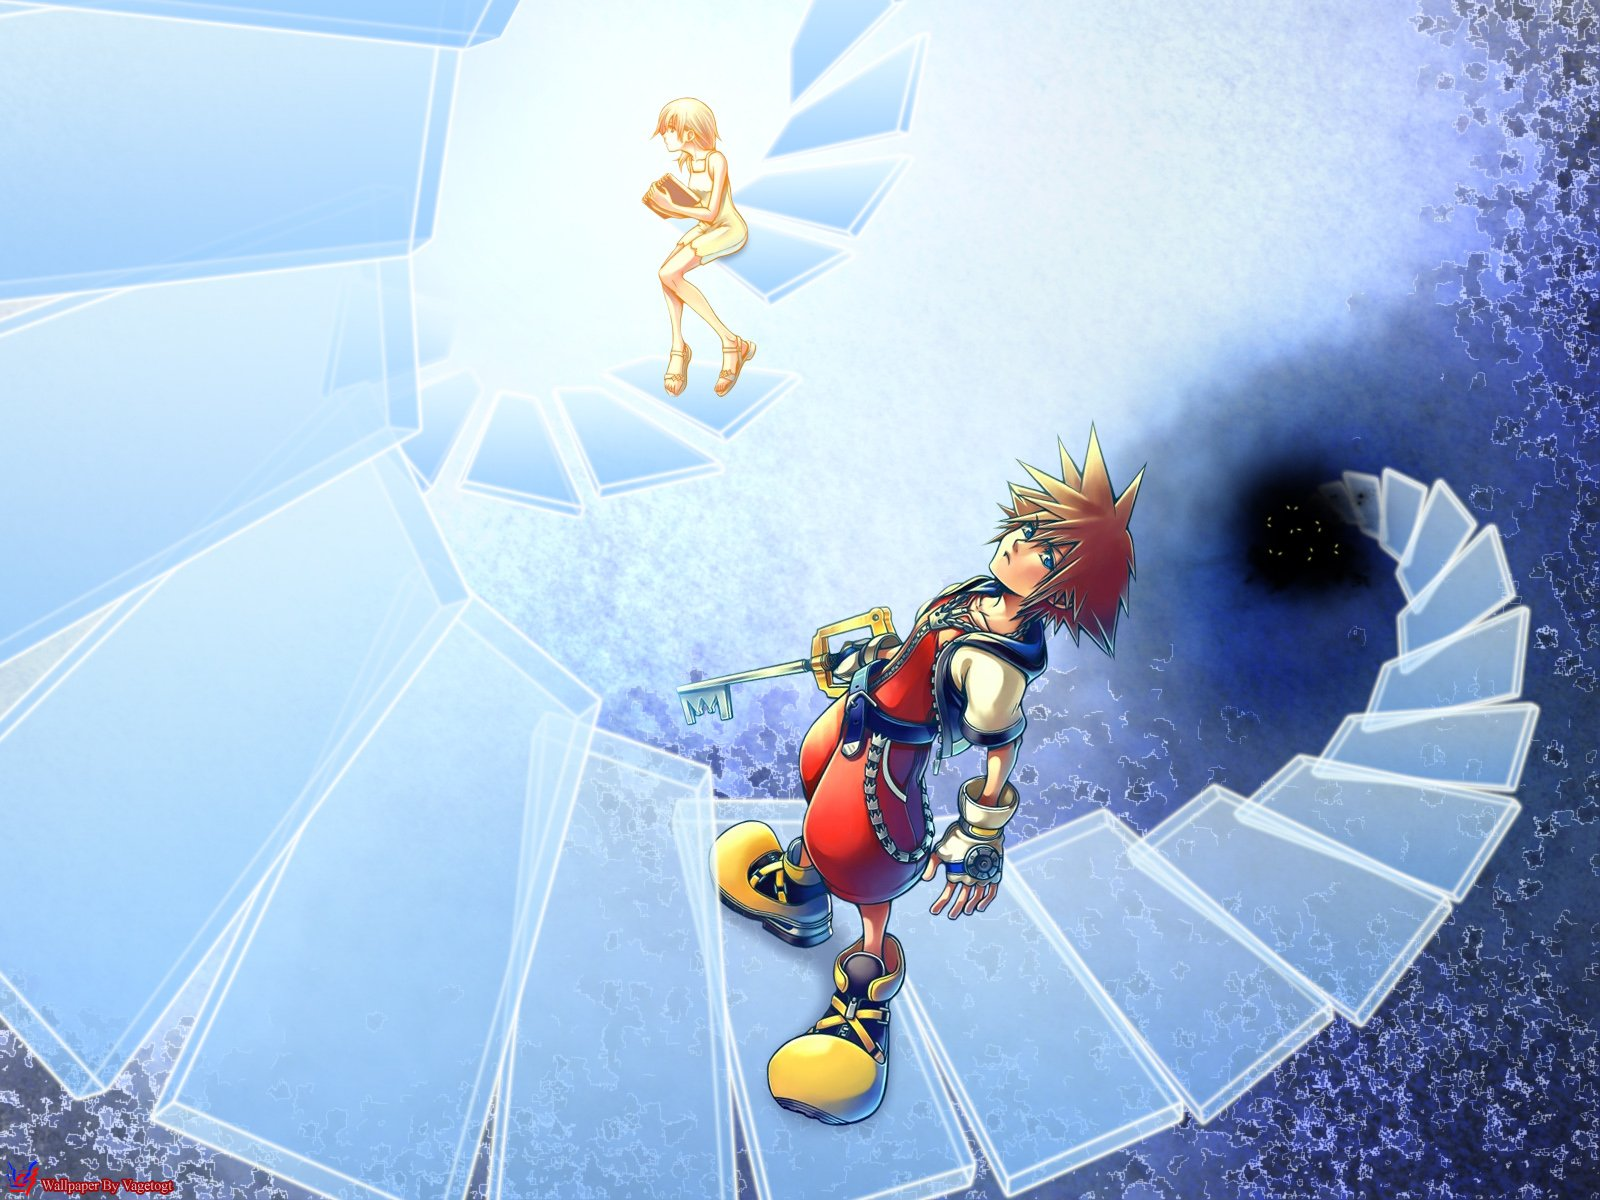 4 Namine Kingdom Hearts Hd Wallpapers Background Images